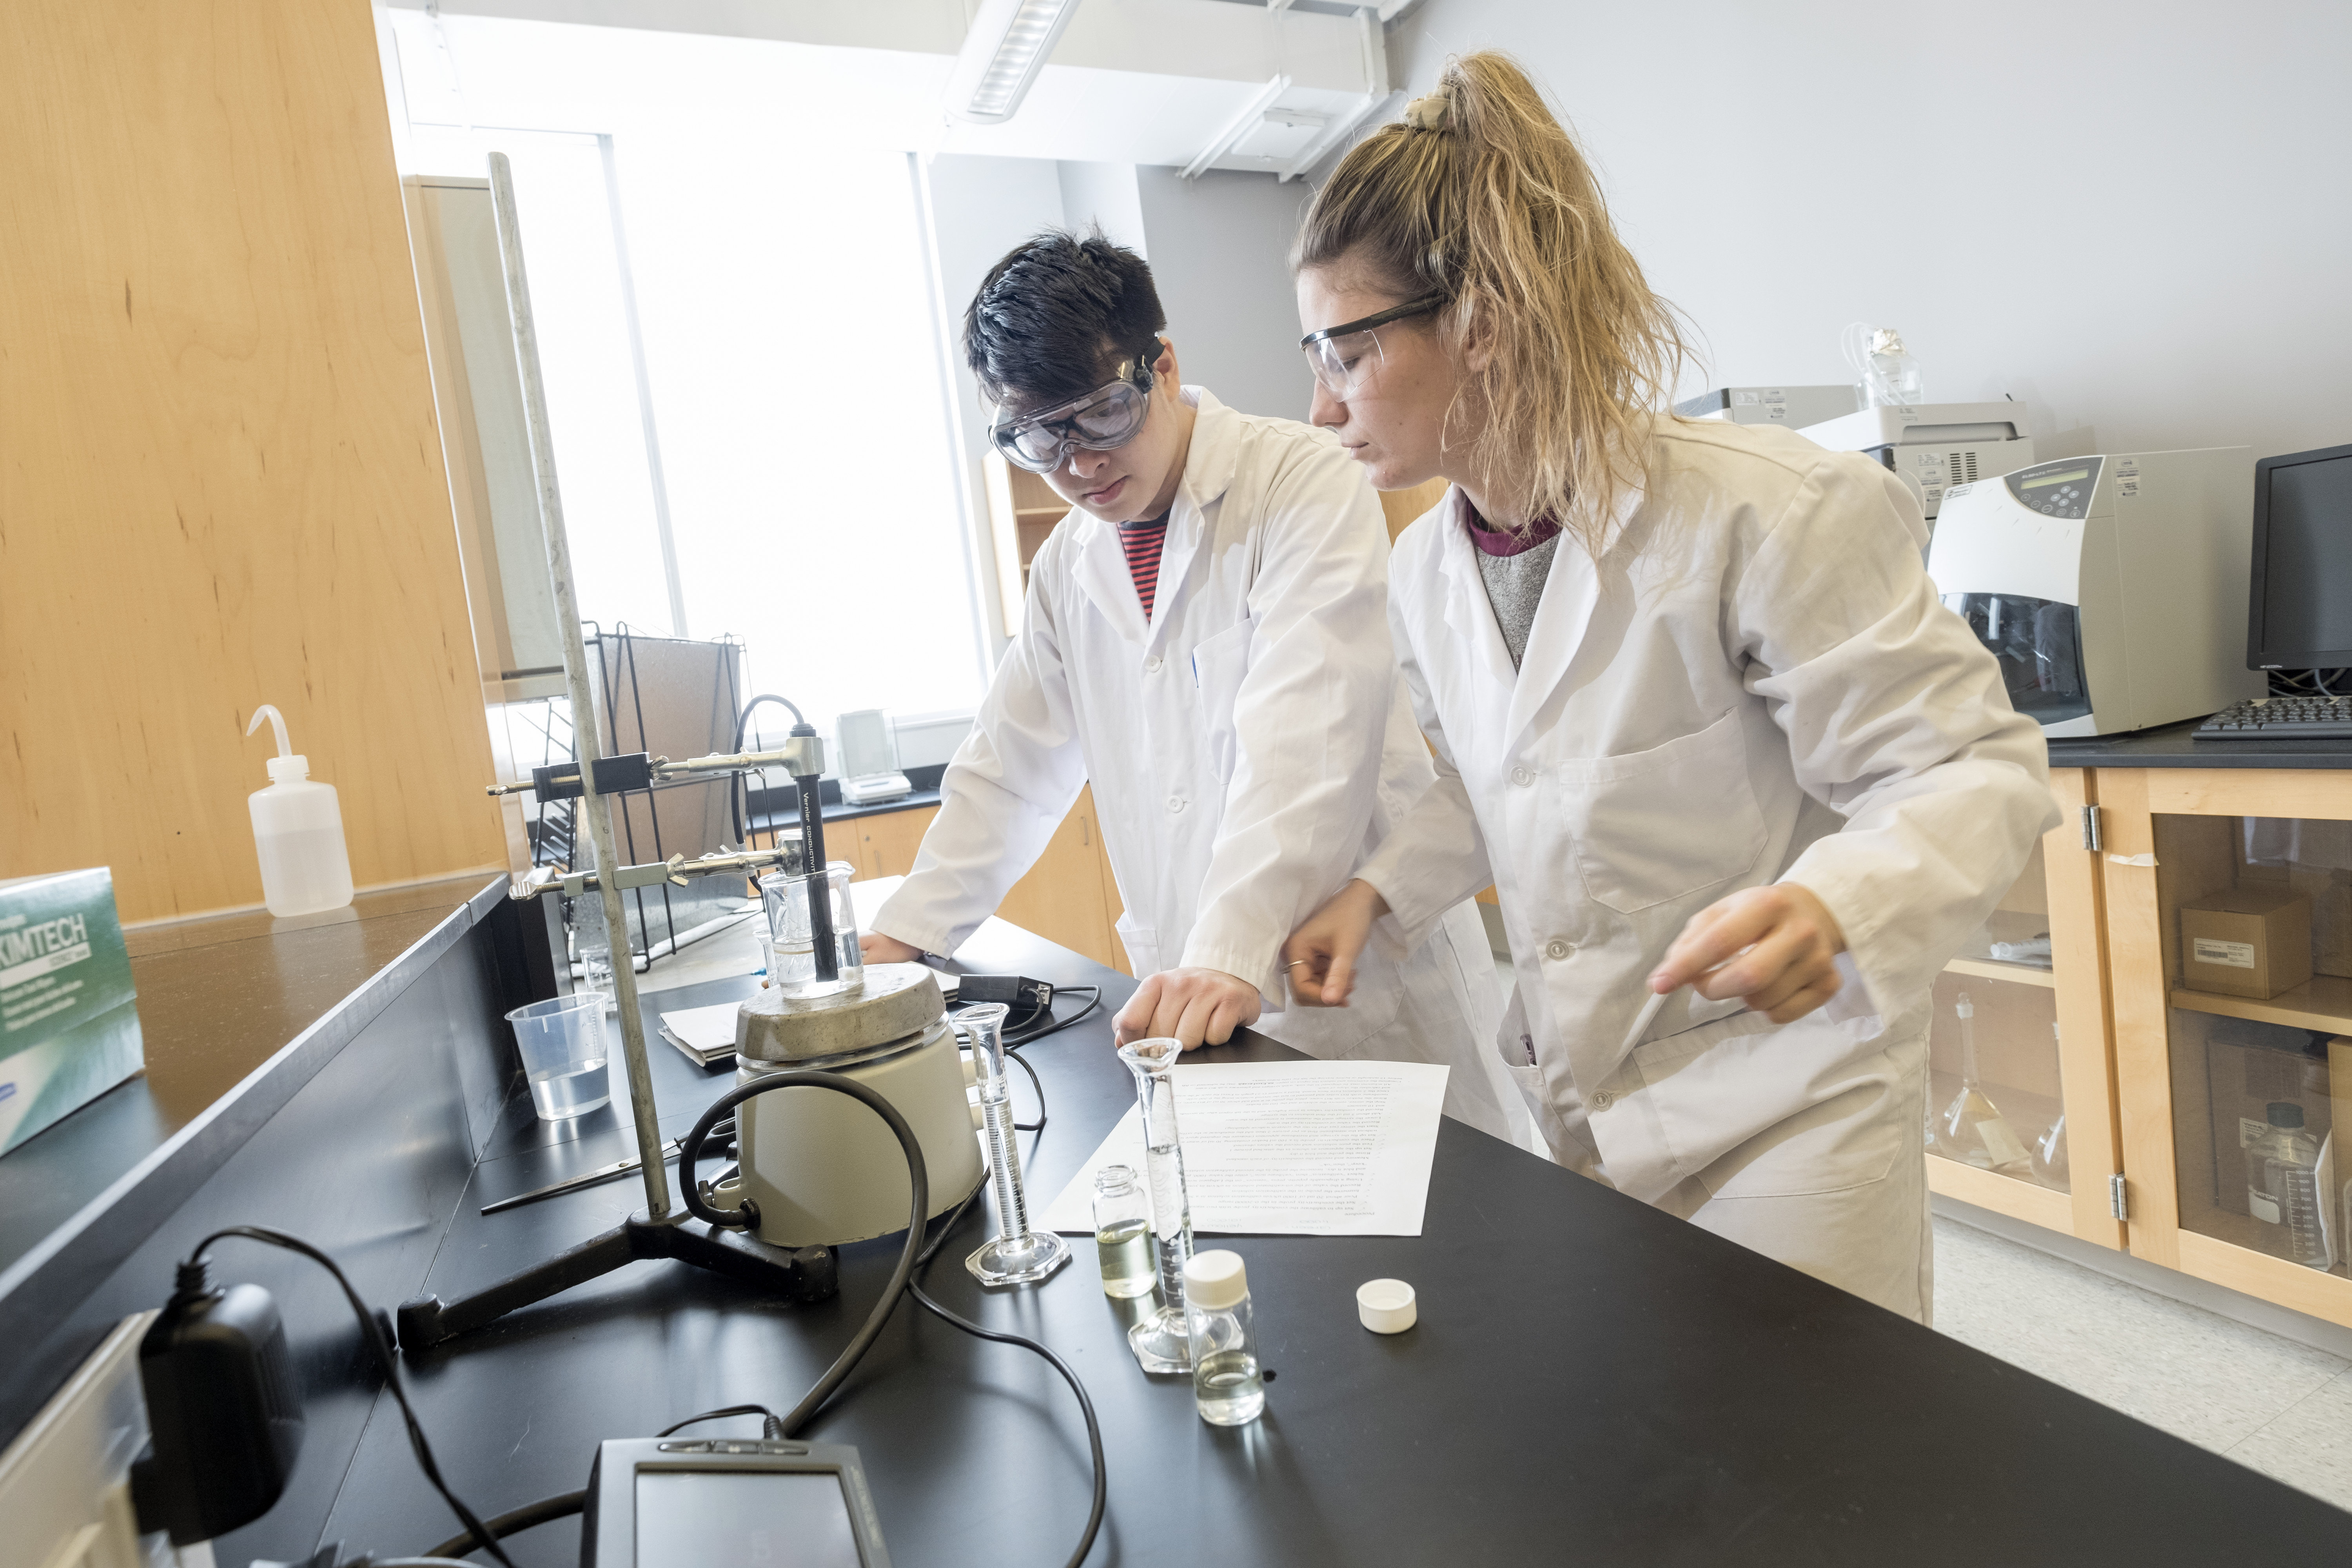 A female and male student working in the lab